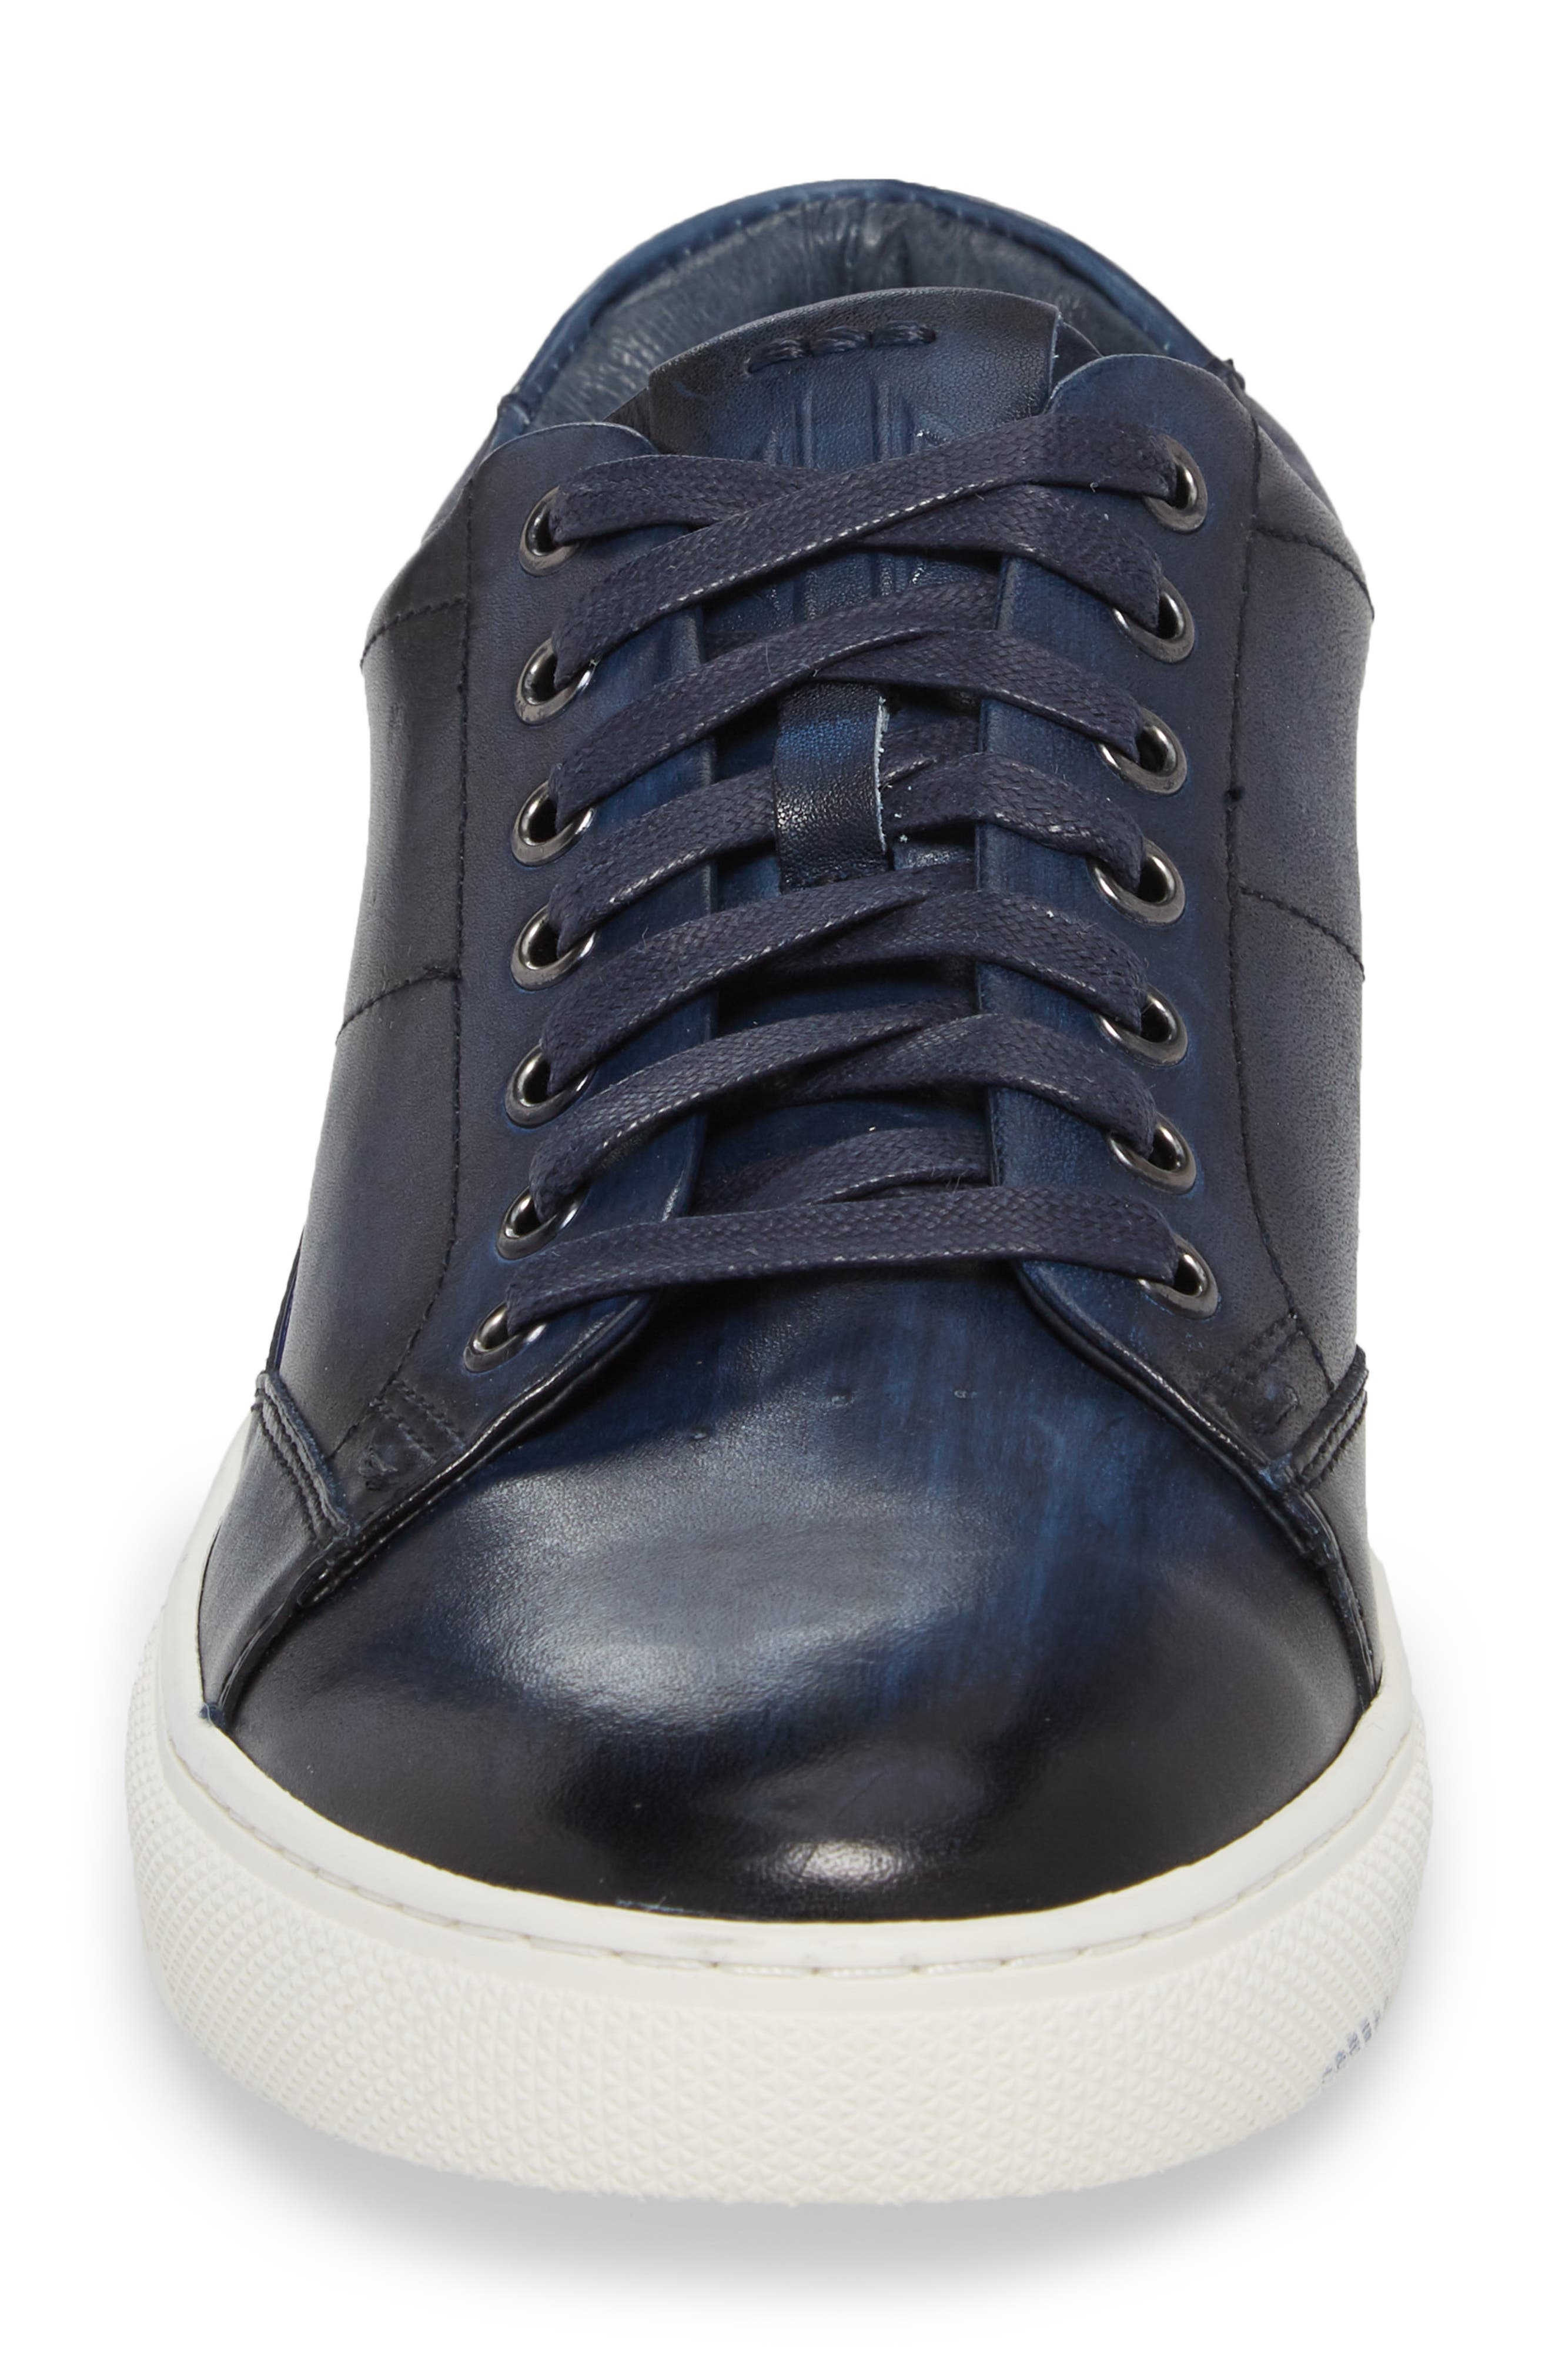 Sweeney Low Top Sneaker,                             Alternate thumbnail 4, color,                             NAVY LEATHER